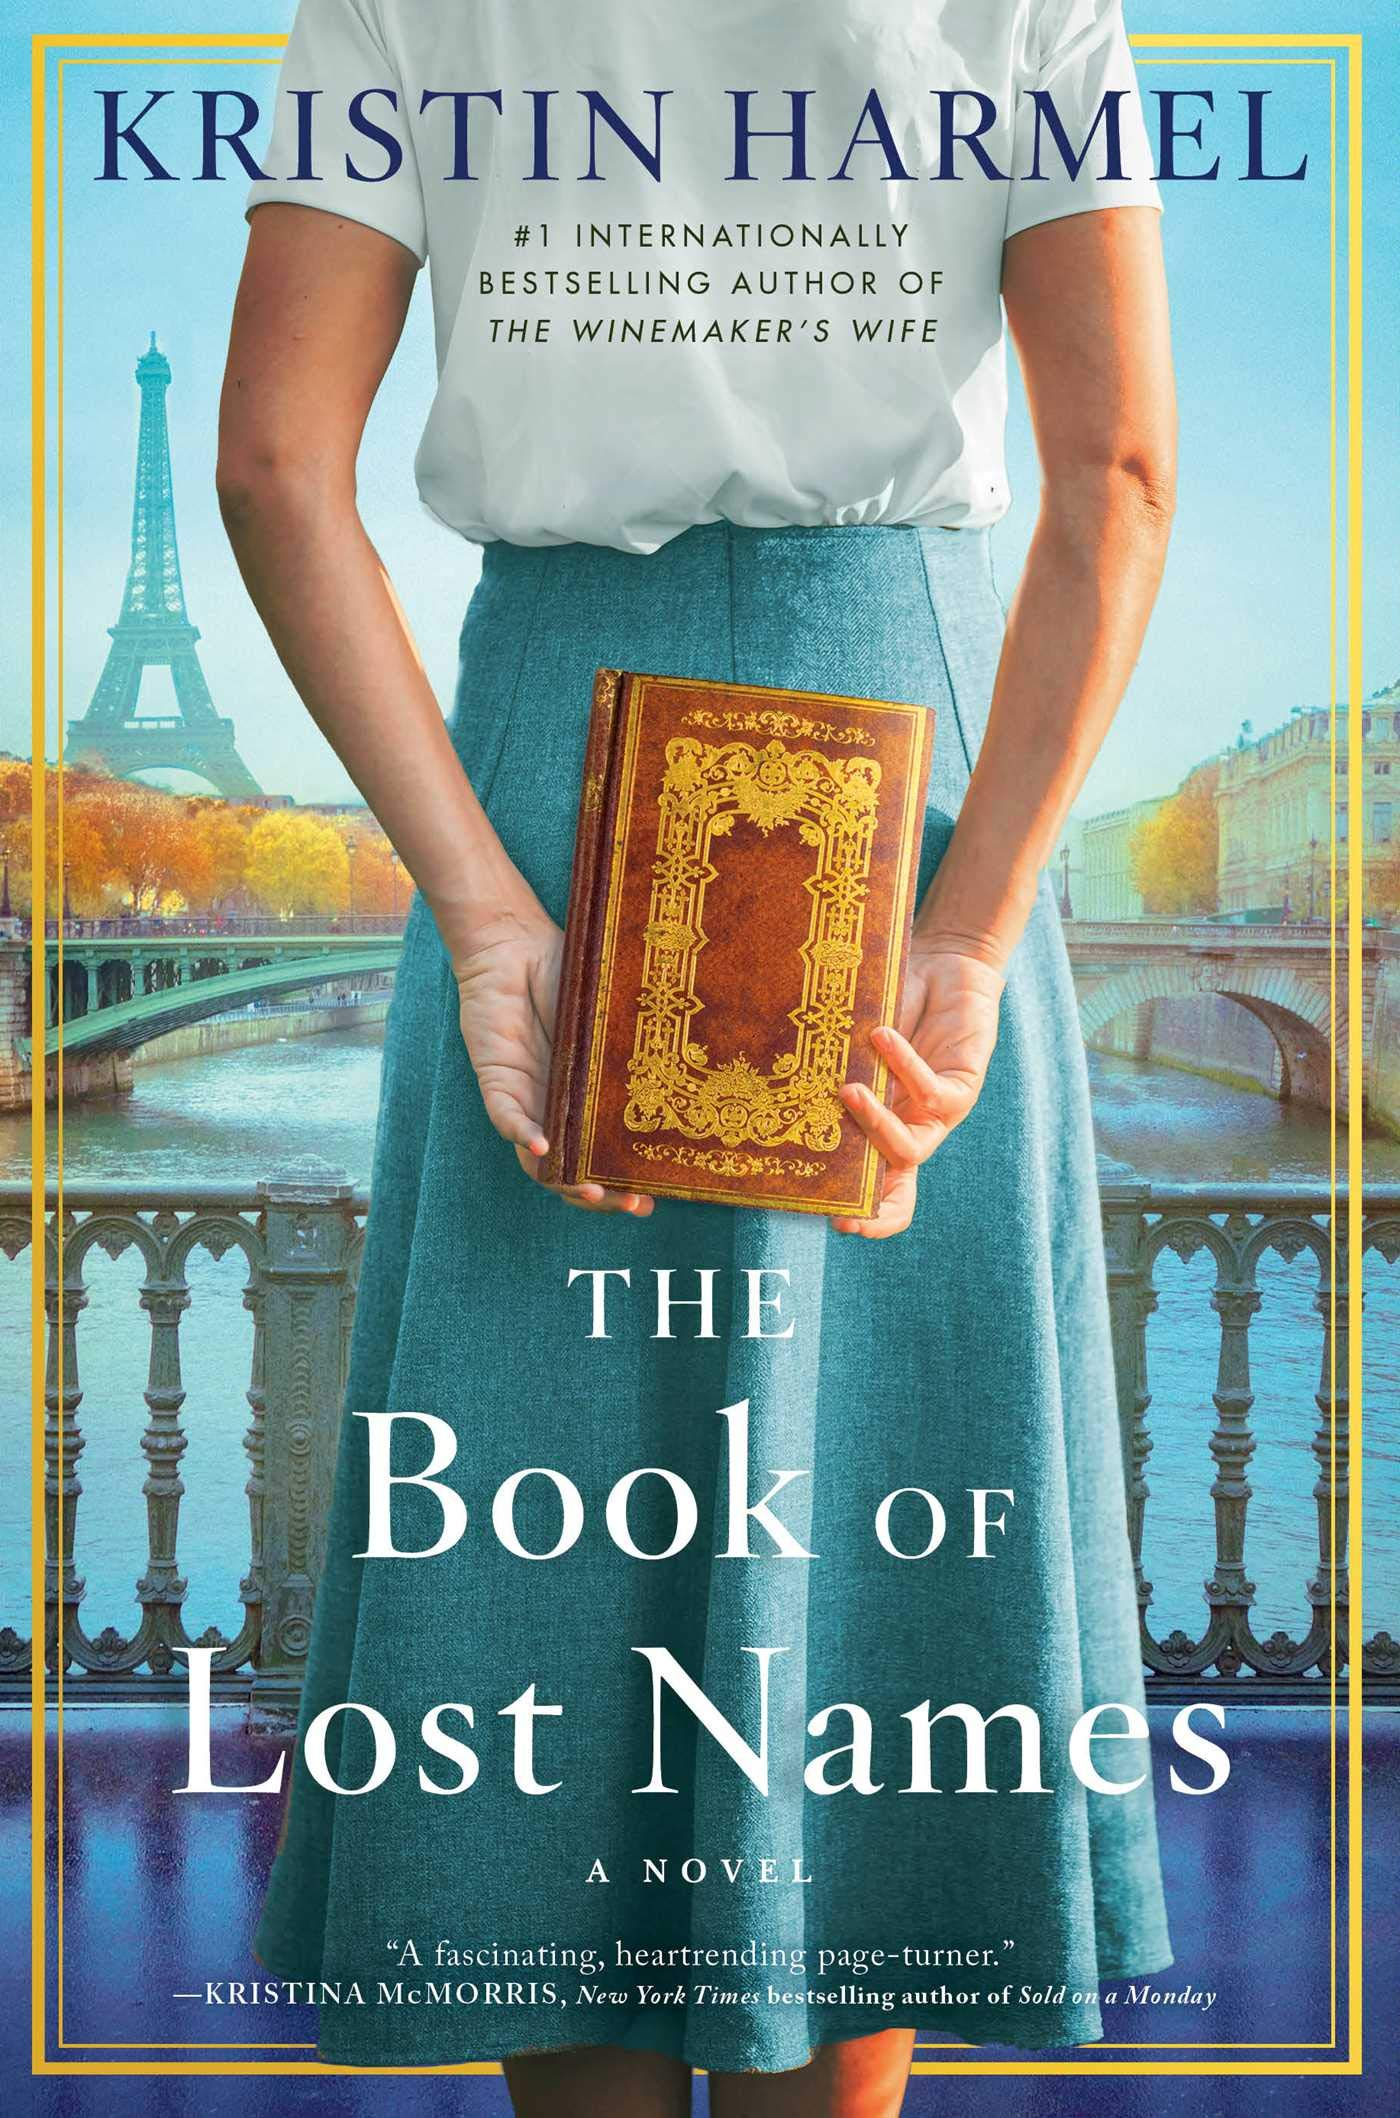 Coalville Book Club (The Book of Lost Names)